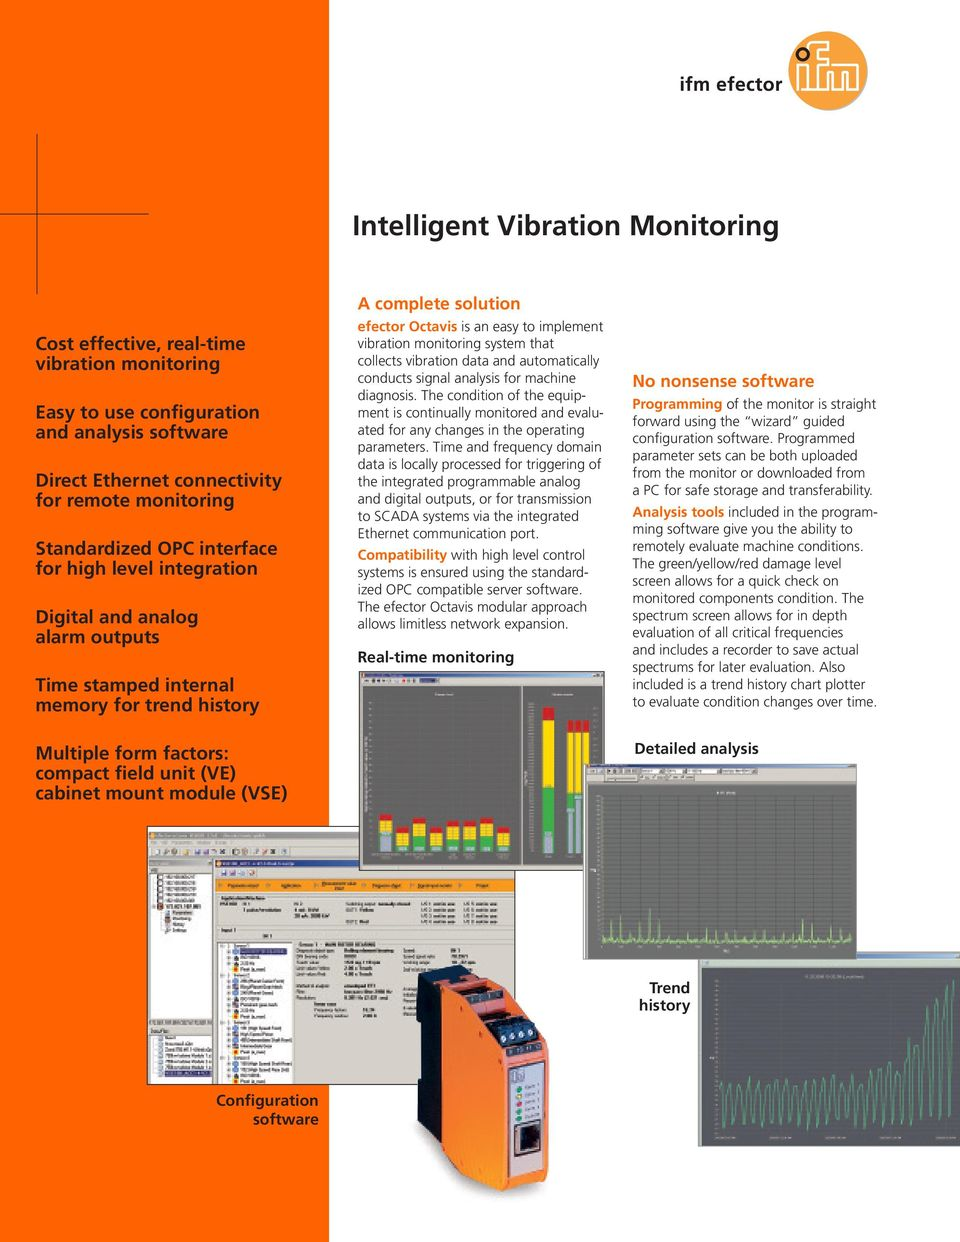 complete solution efector Octavis is an easy to implement vibration monitoring system that collects vibration data and automatically conducts signal analysis for machine diagnosis.